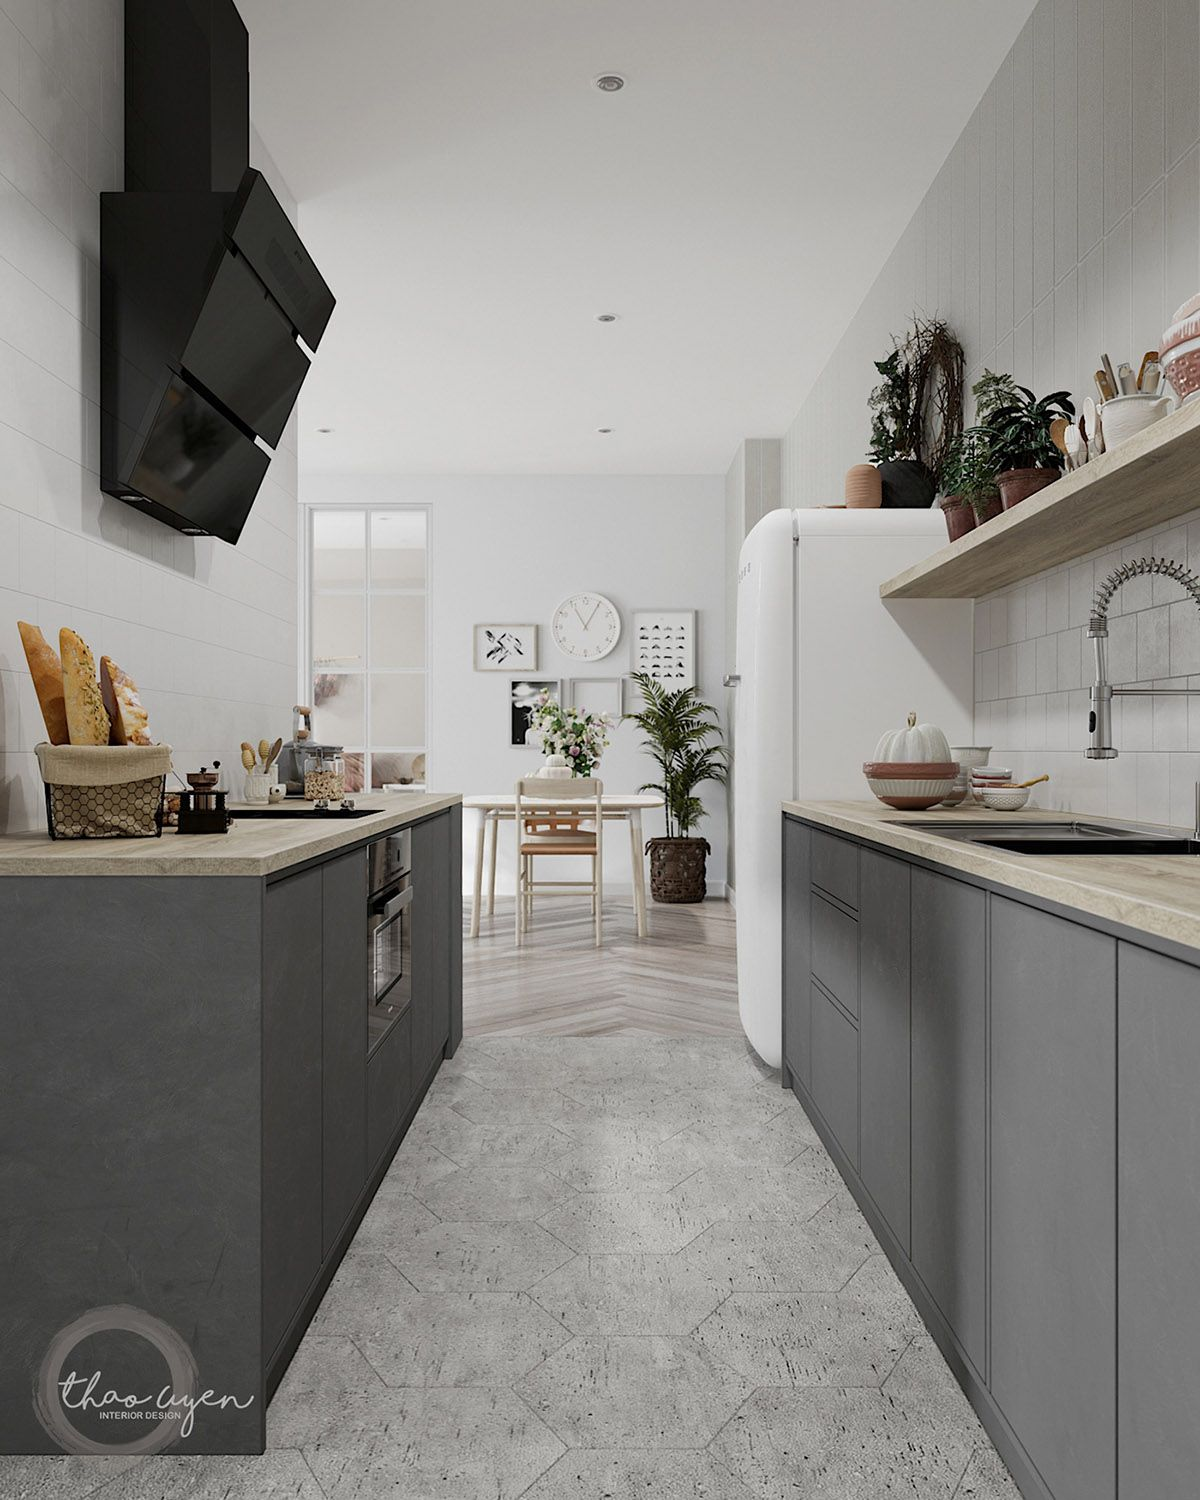 3 Homes That Show Off The Beauty In Simplicity Of Modern Scandinavian Design Kitchen Design Small Galley Kitchen Remodel Galley Kitchen Design